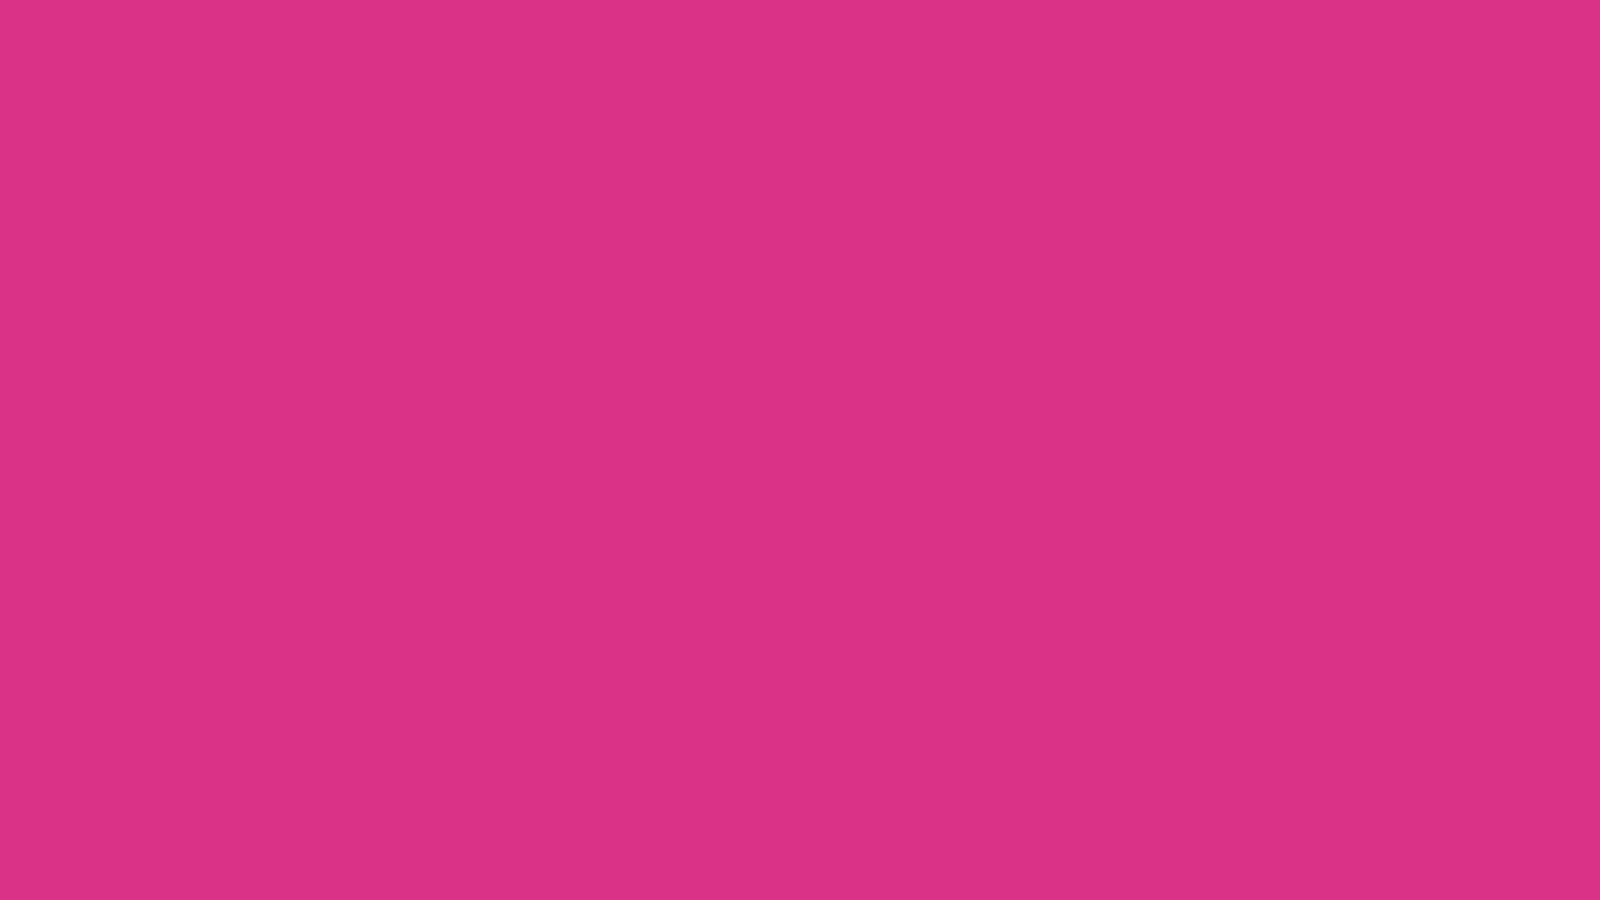 1600x900 Deep Cerise Solid Color Background